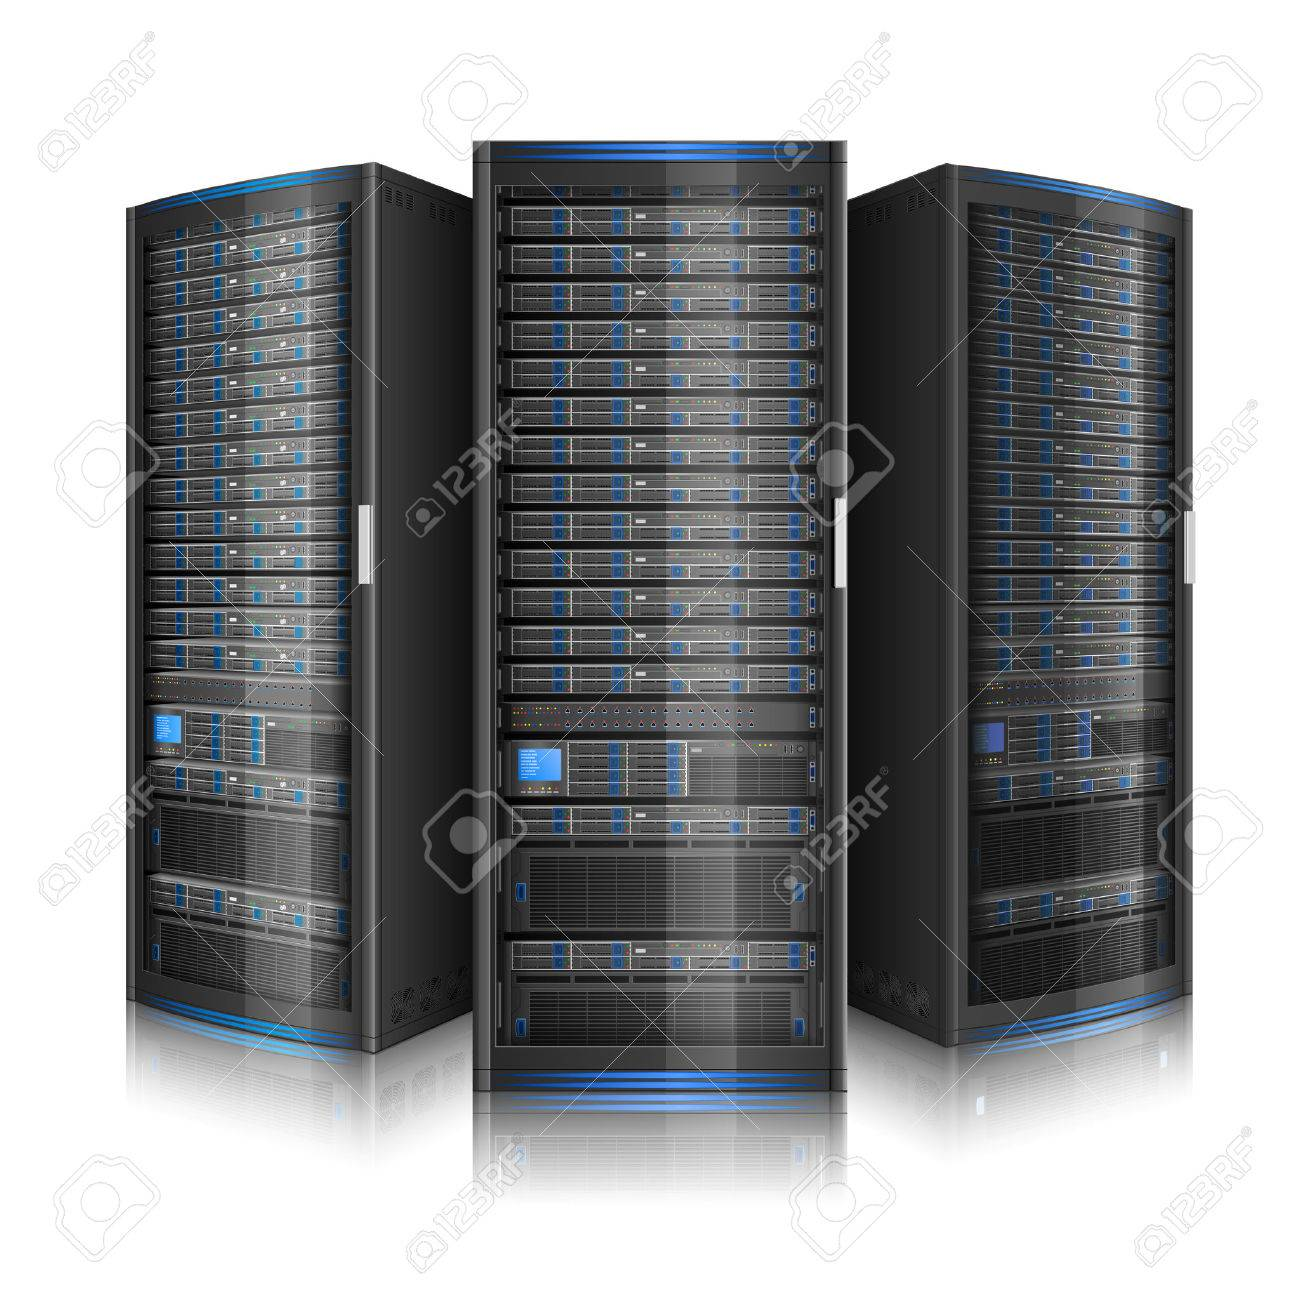 Row of network servers, illustration of data center, or super computer, contains transparency - 57964820